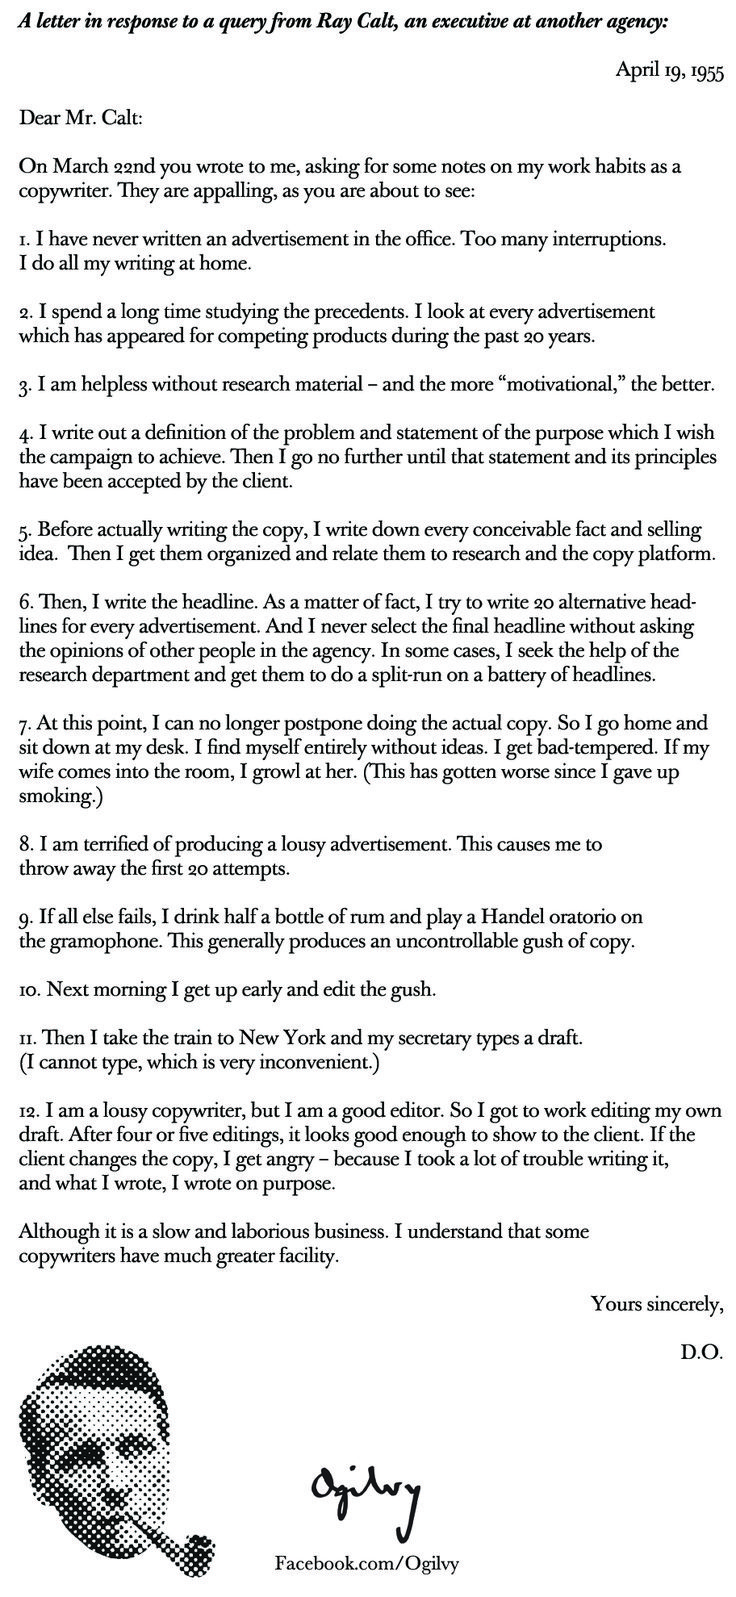 David Ogilvy's Work Habits as a  Copywriter... D.O. wrote this in response to a query from Ray Calt, an executive at another agency.